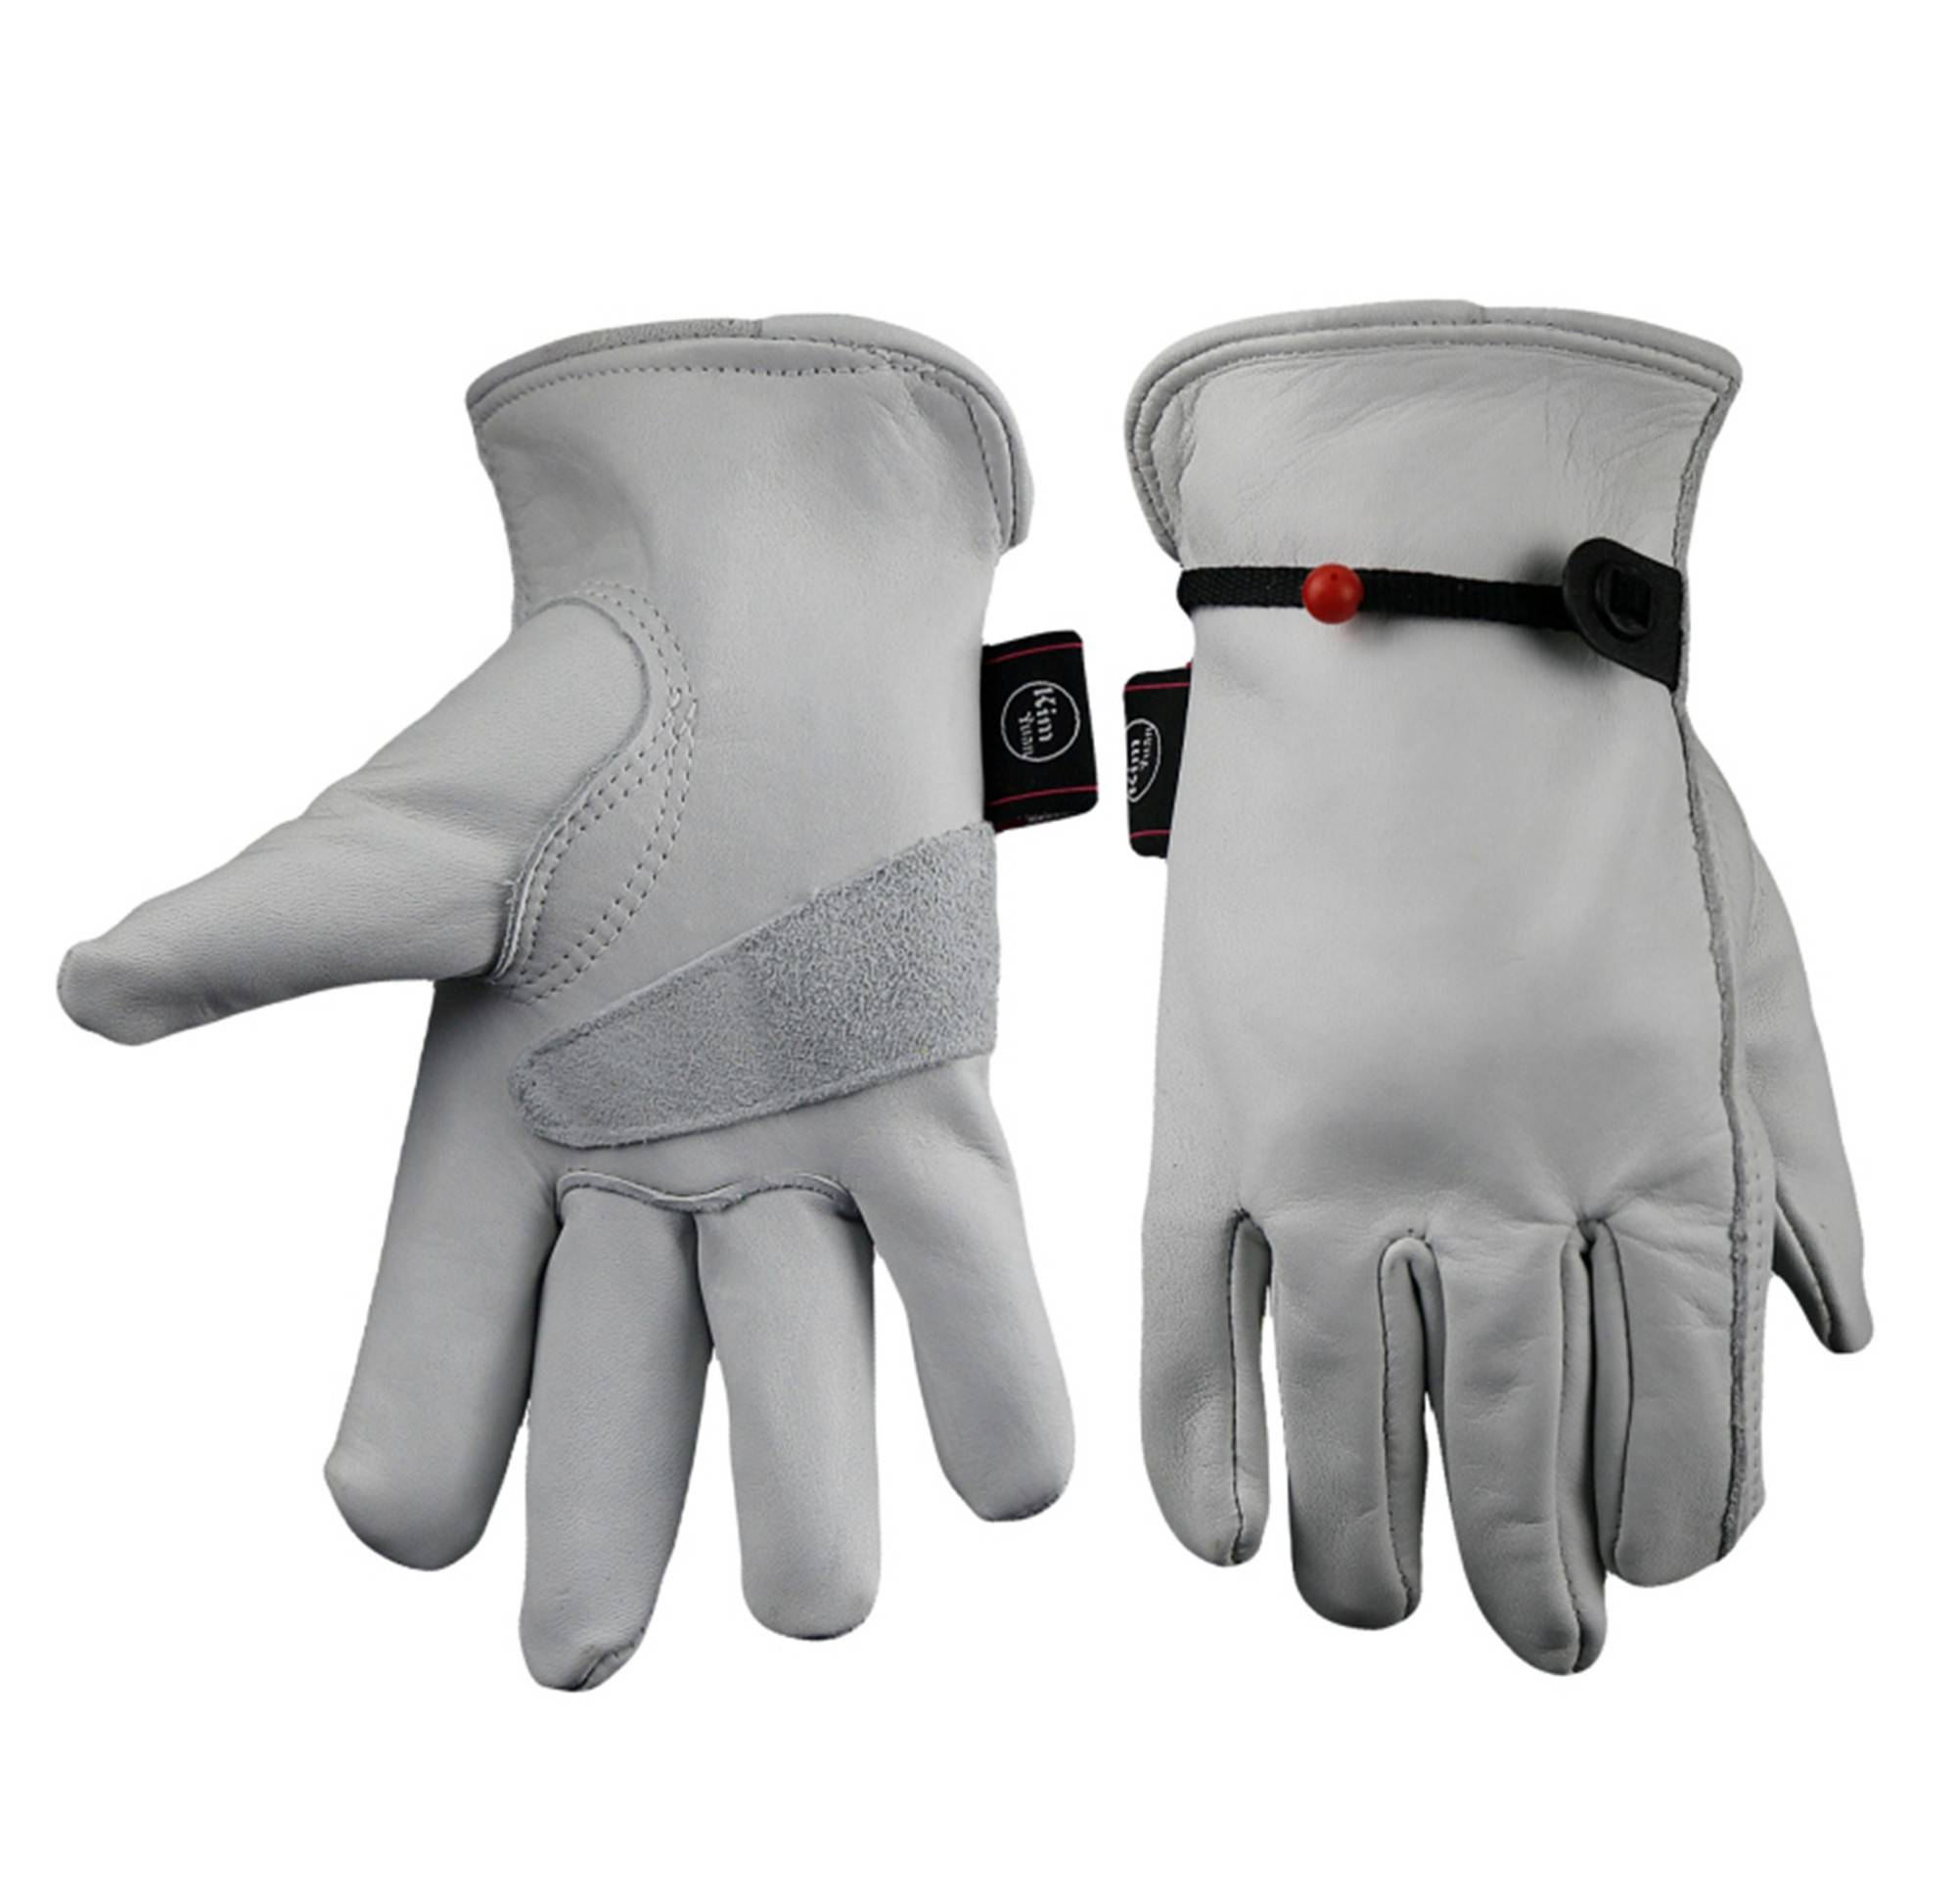 KIM YUAN Work Gloves grain cowhide For Yard/Cutting/Construction/Motorcycle,With wrist buckle Free adjustment Men&Women